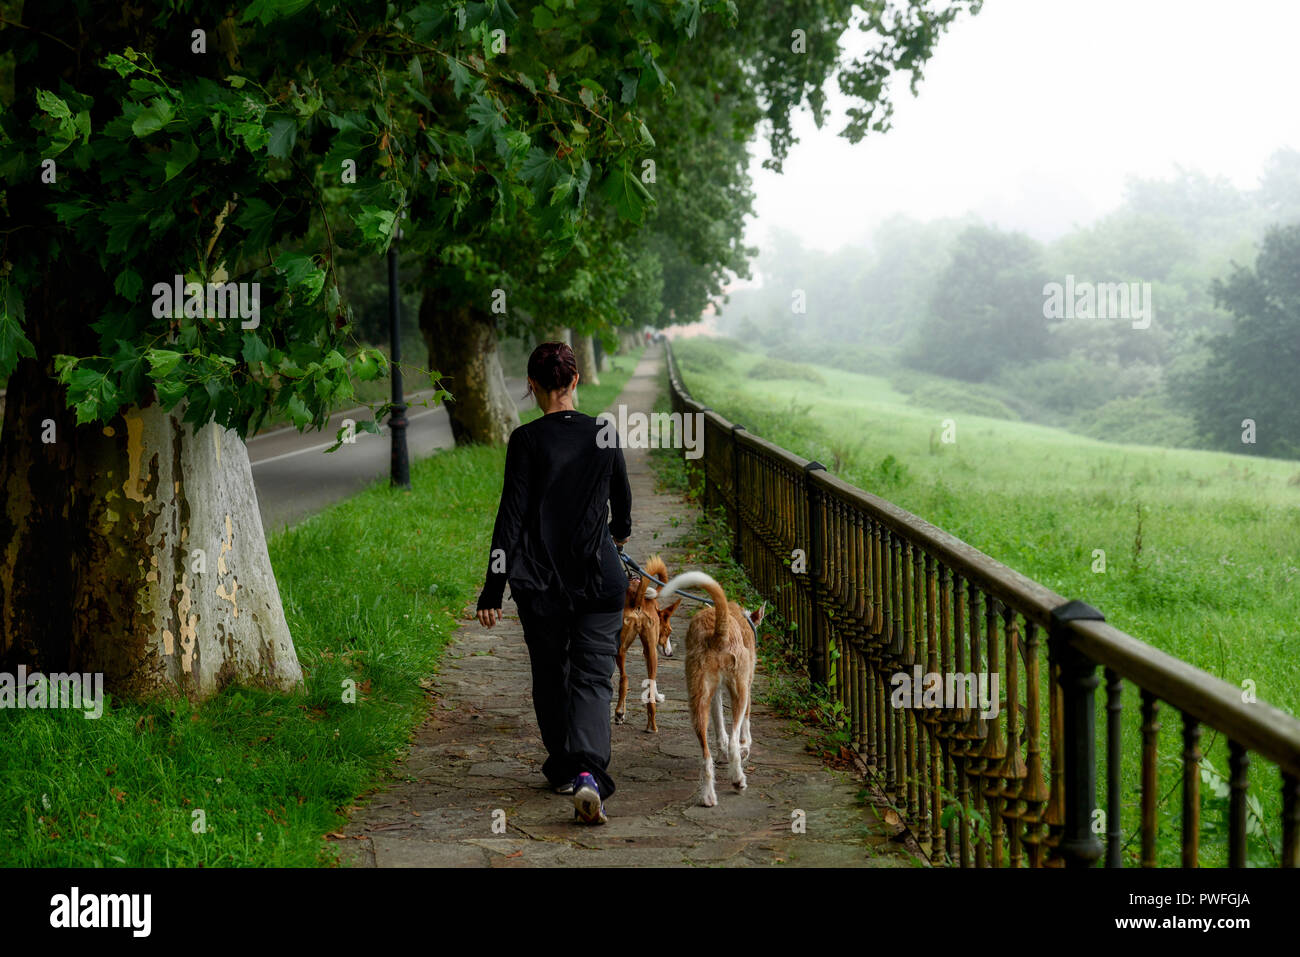 Mysterious path in a foggy day - Stock Image